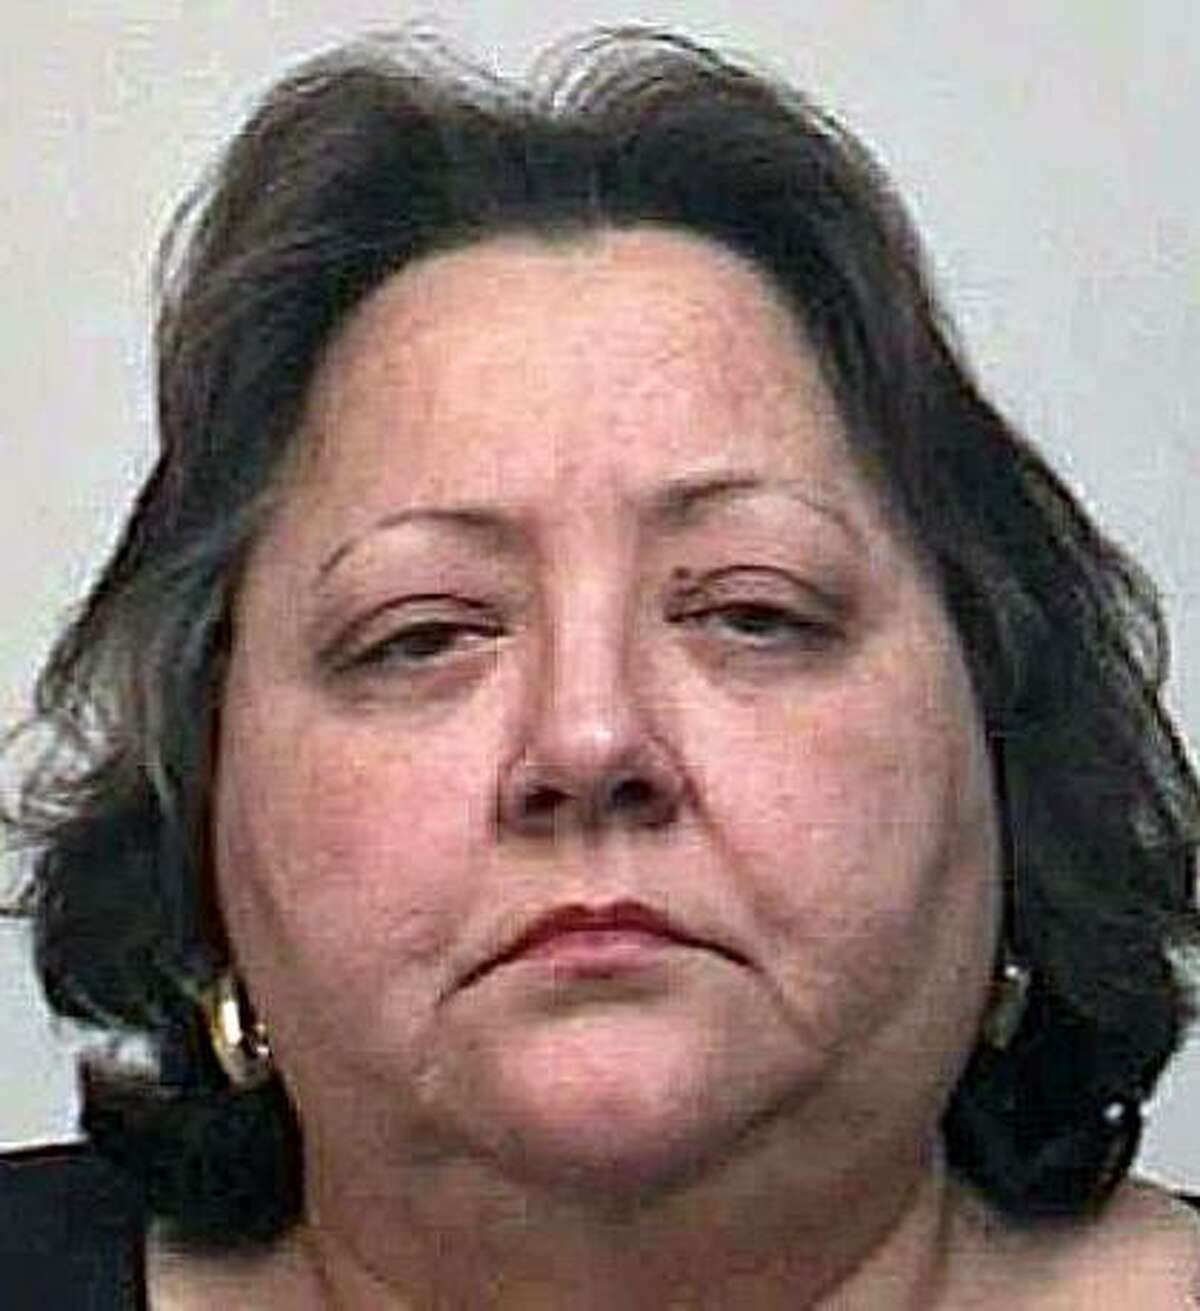 Carmella Jamshidian has been sentenced to nine years in prison on a charge that she stole more than $200,000 from the savings of three elderly Fairfield siblings.